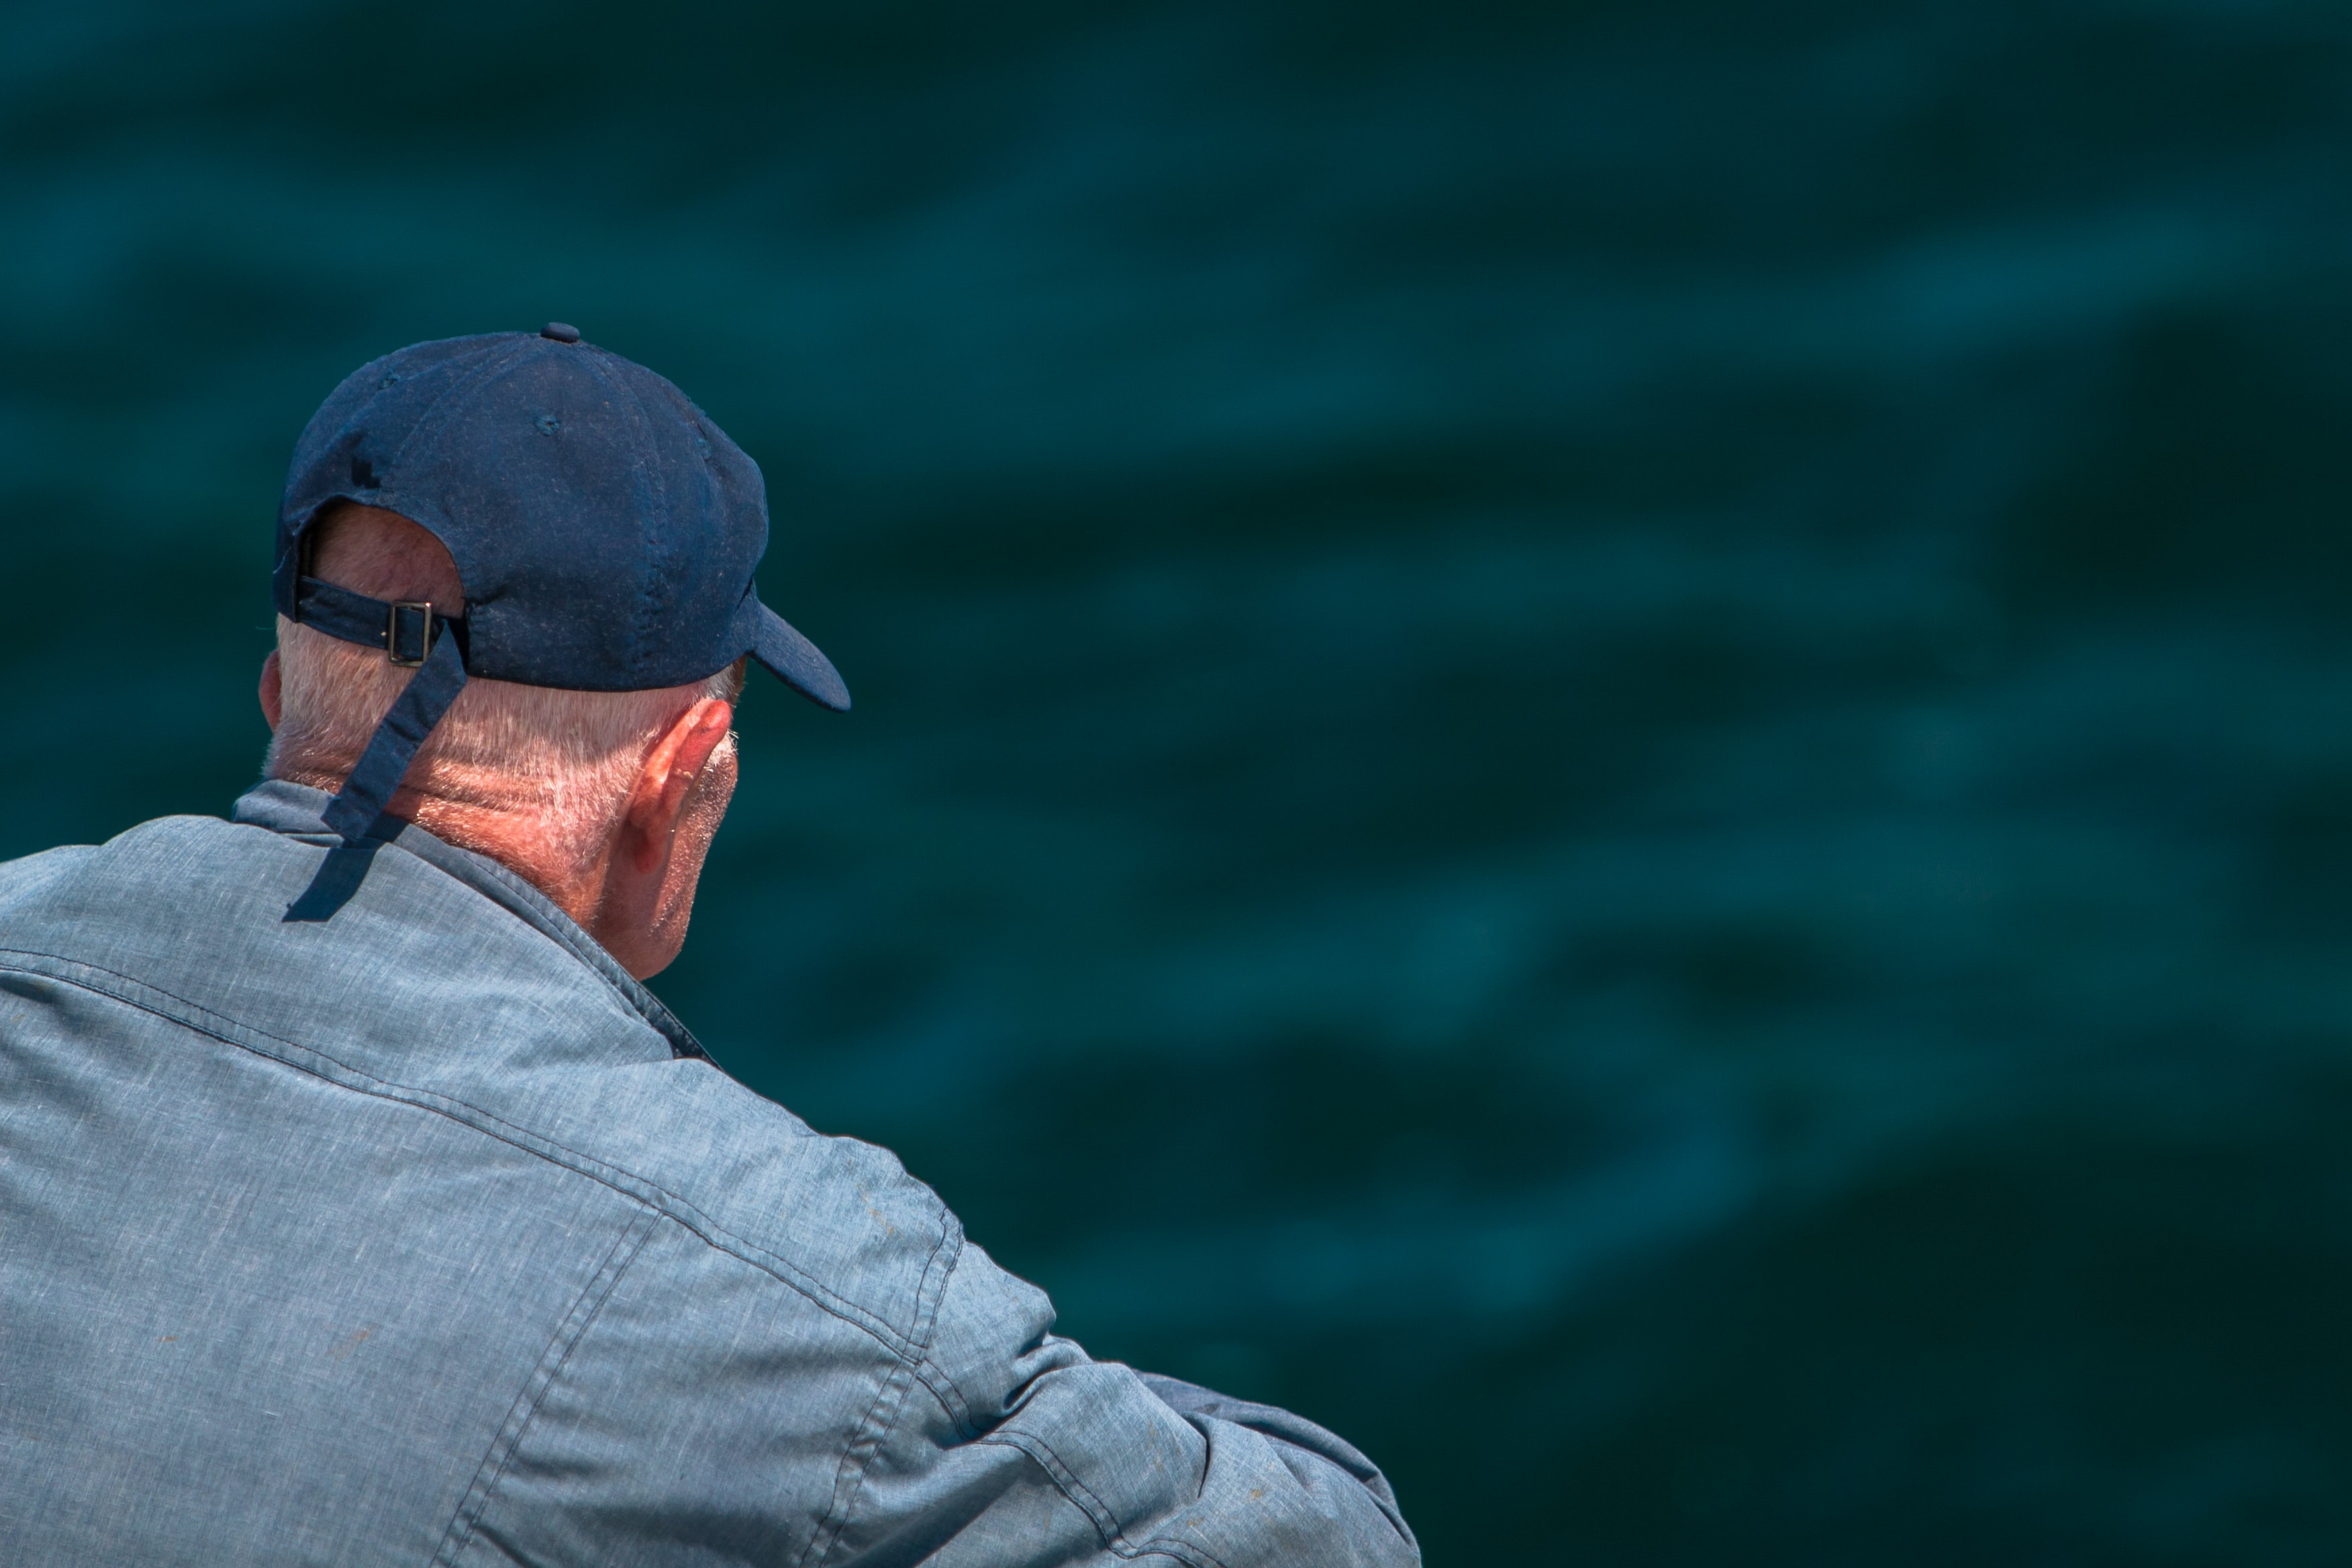 man looking on body of water wearing black cap